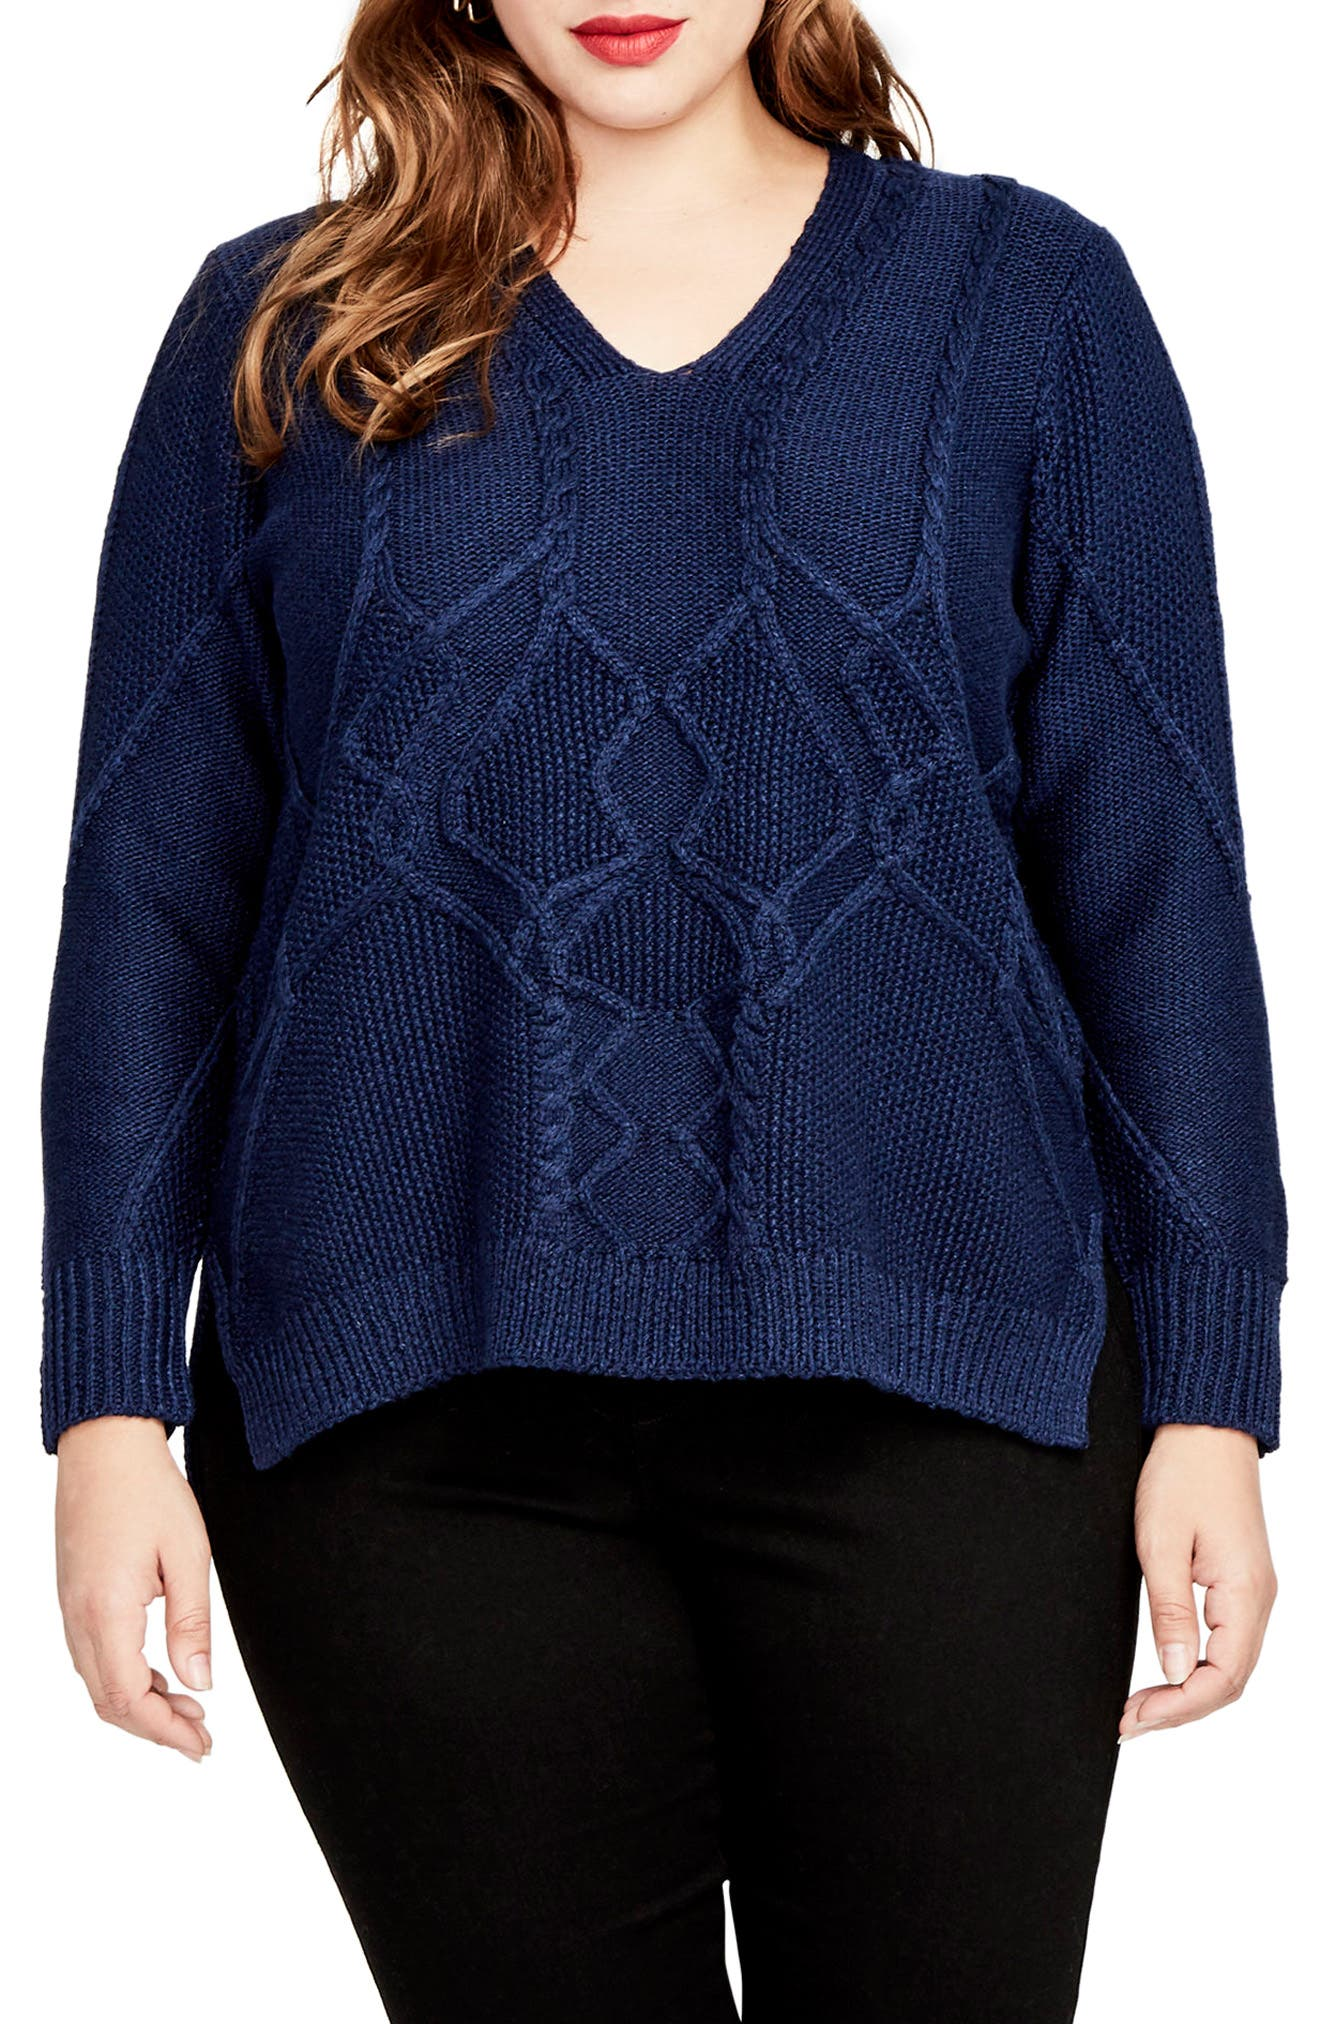 Mixed Cable Sweater,                         Main,                         color, Blue Navy